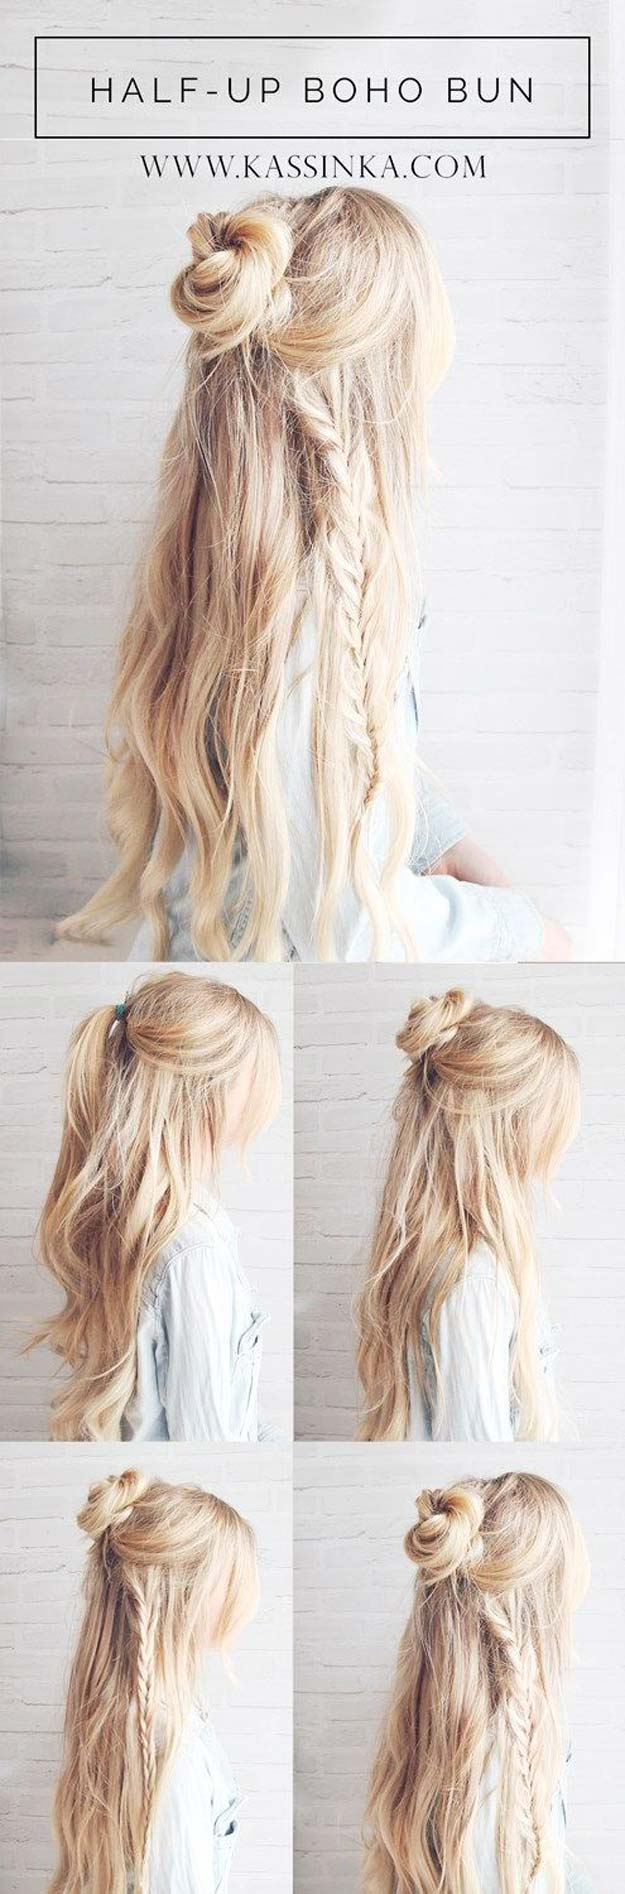 Best Hairstyles for Long Hair Boho